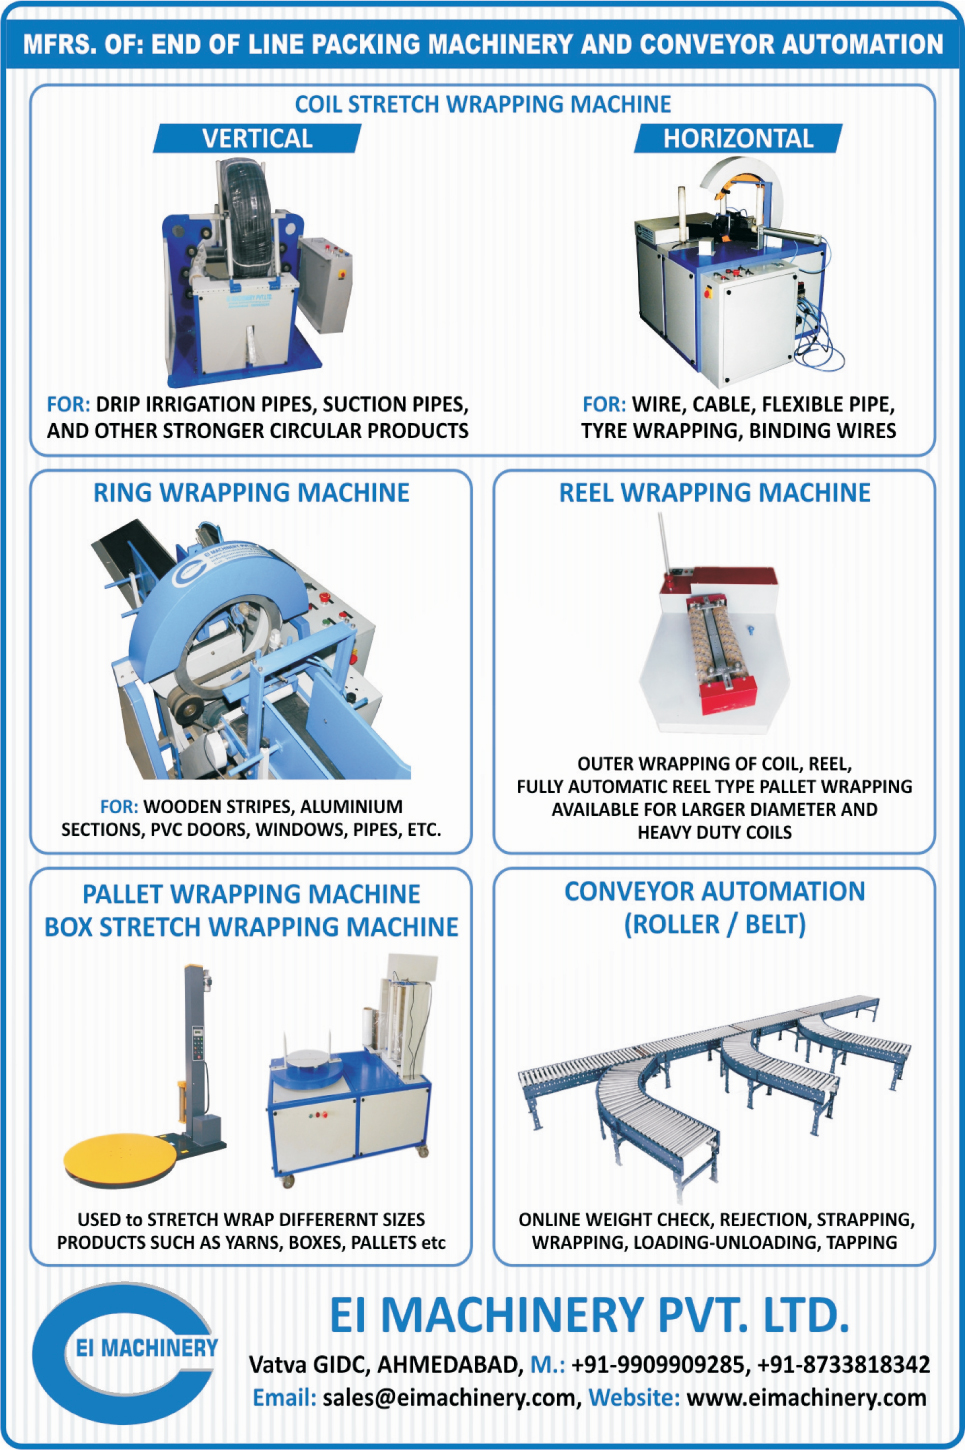 Coil Stretch Wrapping Machines, Vertical Coil Stretch Wrapping Machines, Horizontal Coil Stretch Wrapping Machines, Ring Wrapping Machines, Reel Wrapping Machines, Pallet Wrapping Machines, Box Stretch Wrapping Machines, Conveyor Automations, Roller Conveyor Automation, Belt Conveyor Automations, End Of Line Packing Machinery